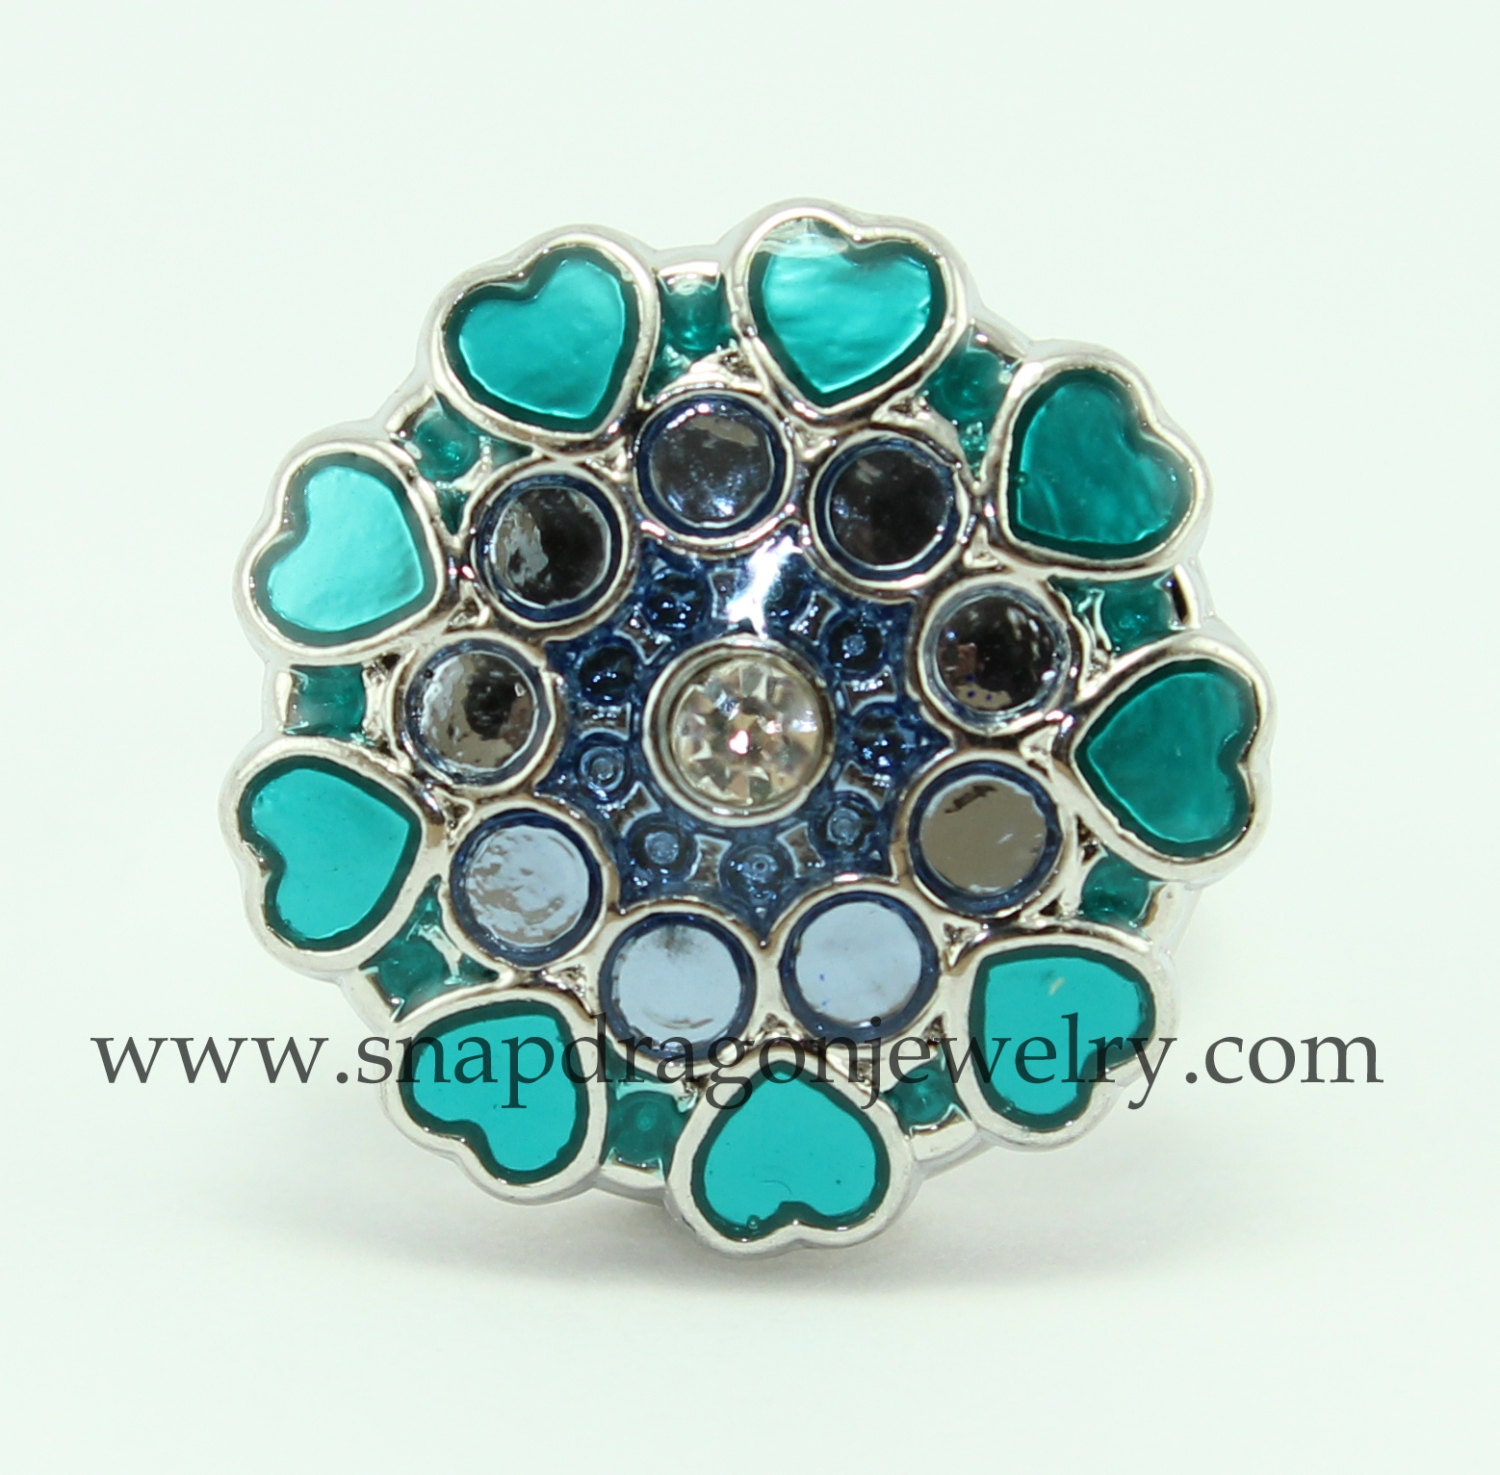 snap jewelry snapdragon jewelry noosa chunk snap button